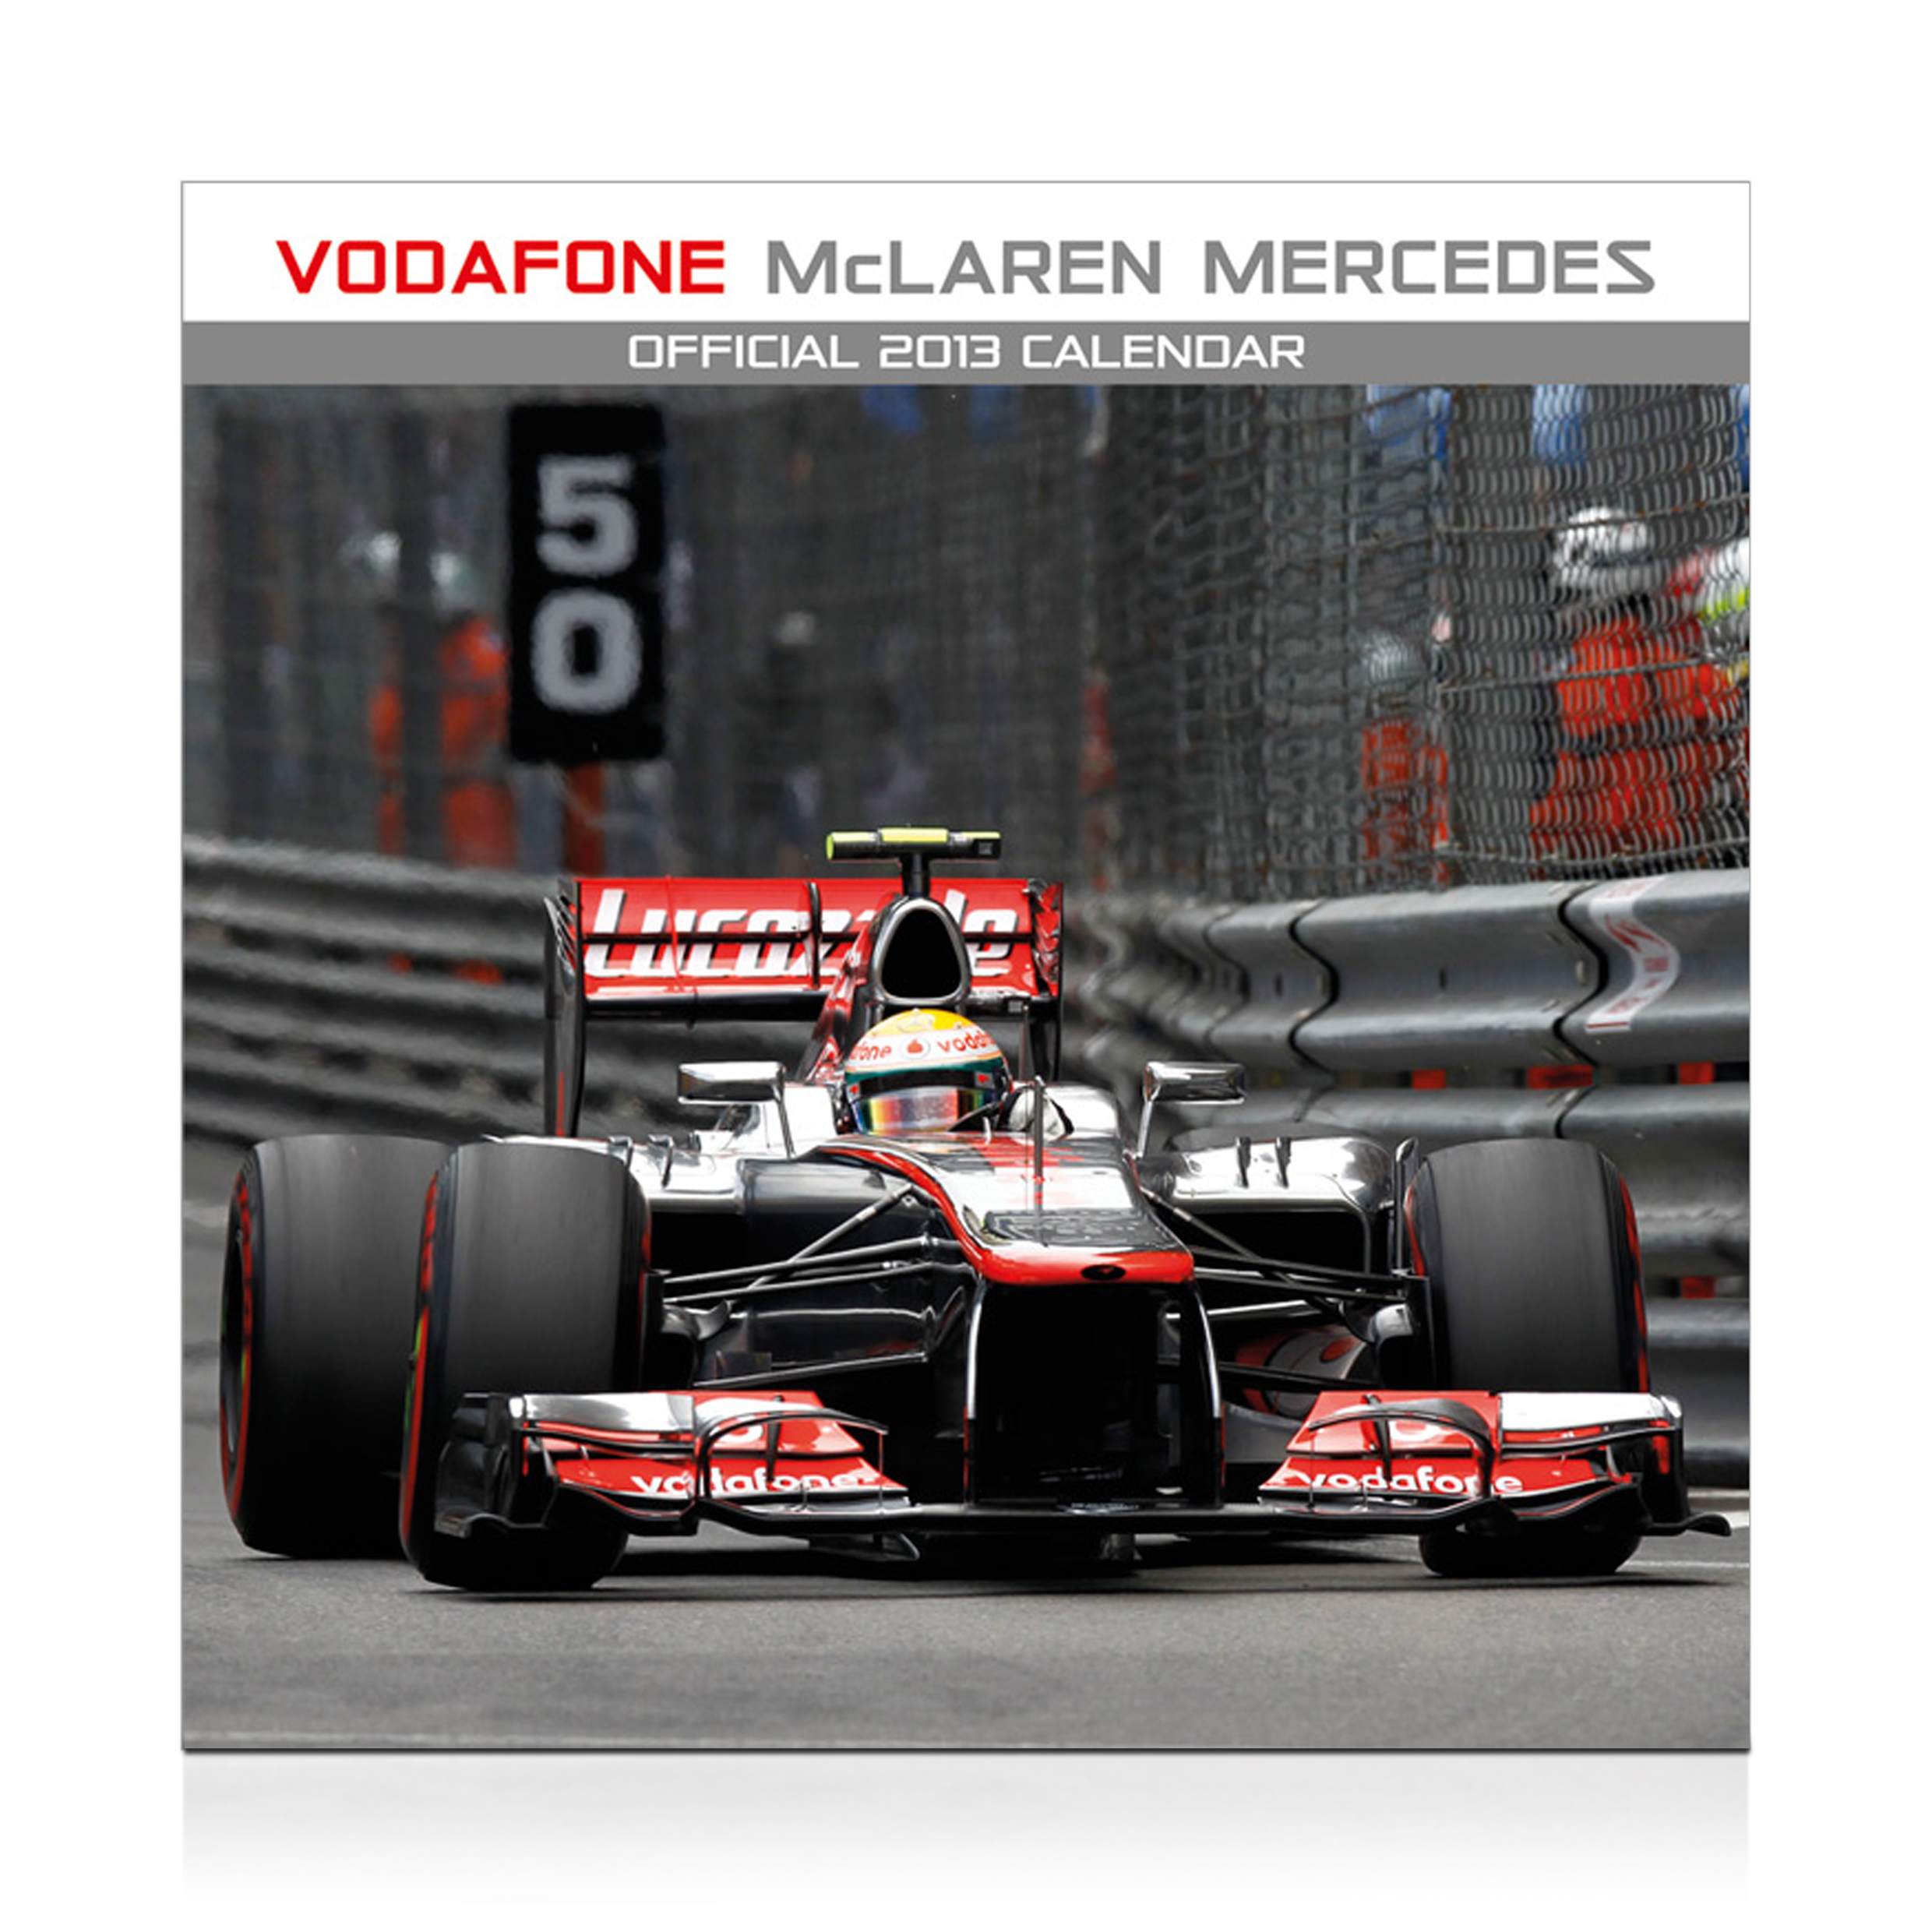 Vodafone McLaren Mercedes Official 2013 Calendar